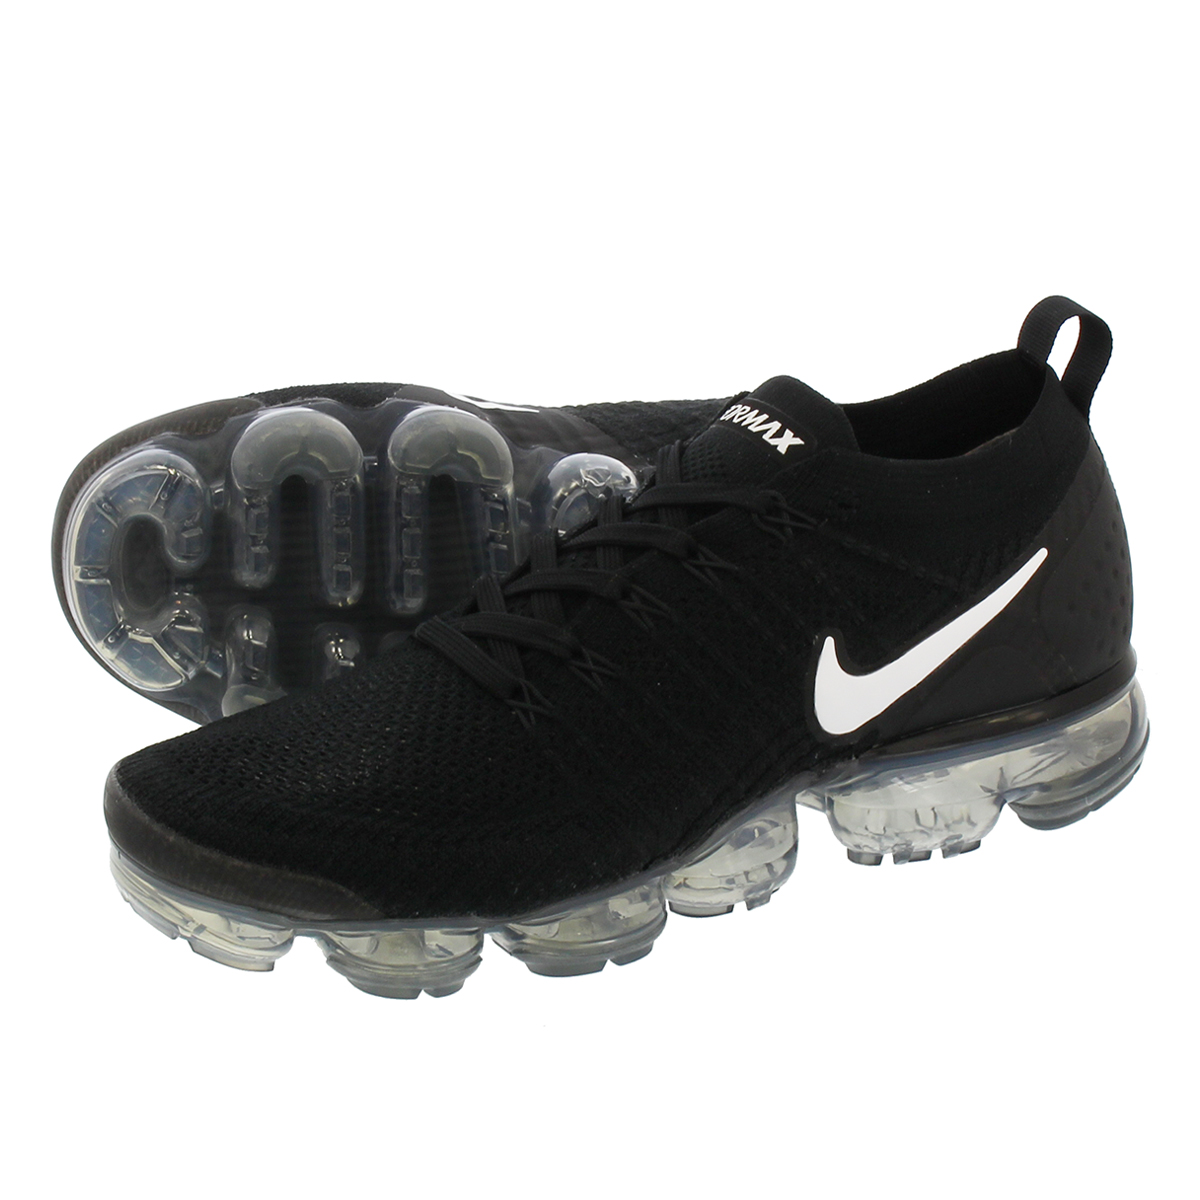 size 40 37349 91327 NIKE AIR VAPORMAX FLYKNIT 2 Nike vapor max fried food knit 2  BLACK/WHITE/DARK GREY/METALLIC SILVER